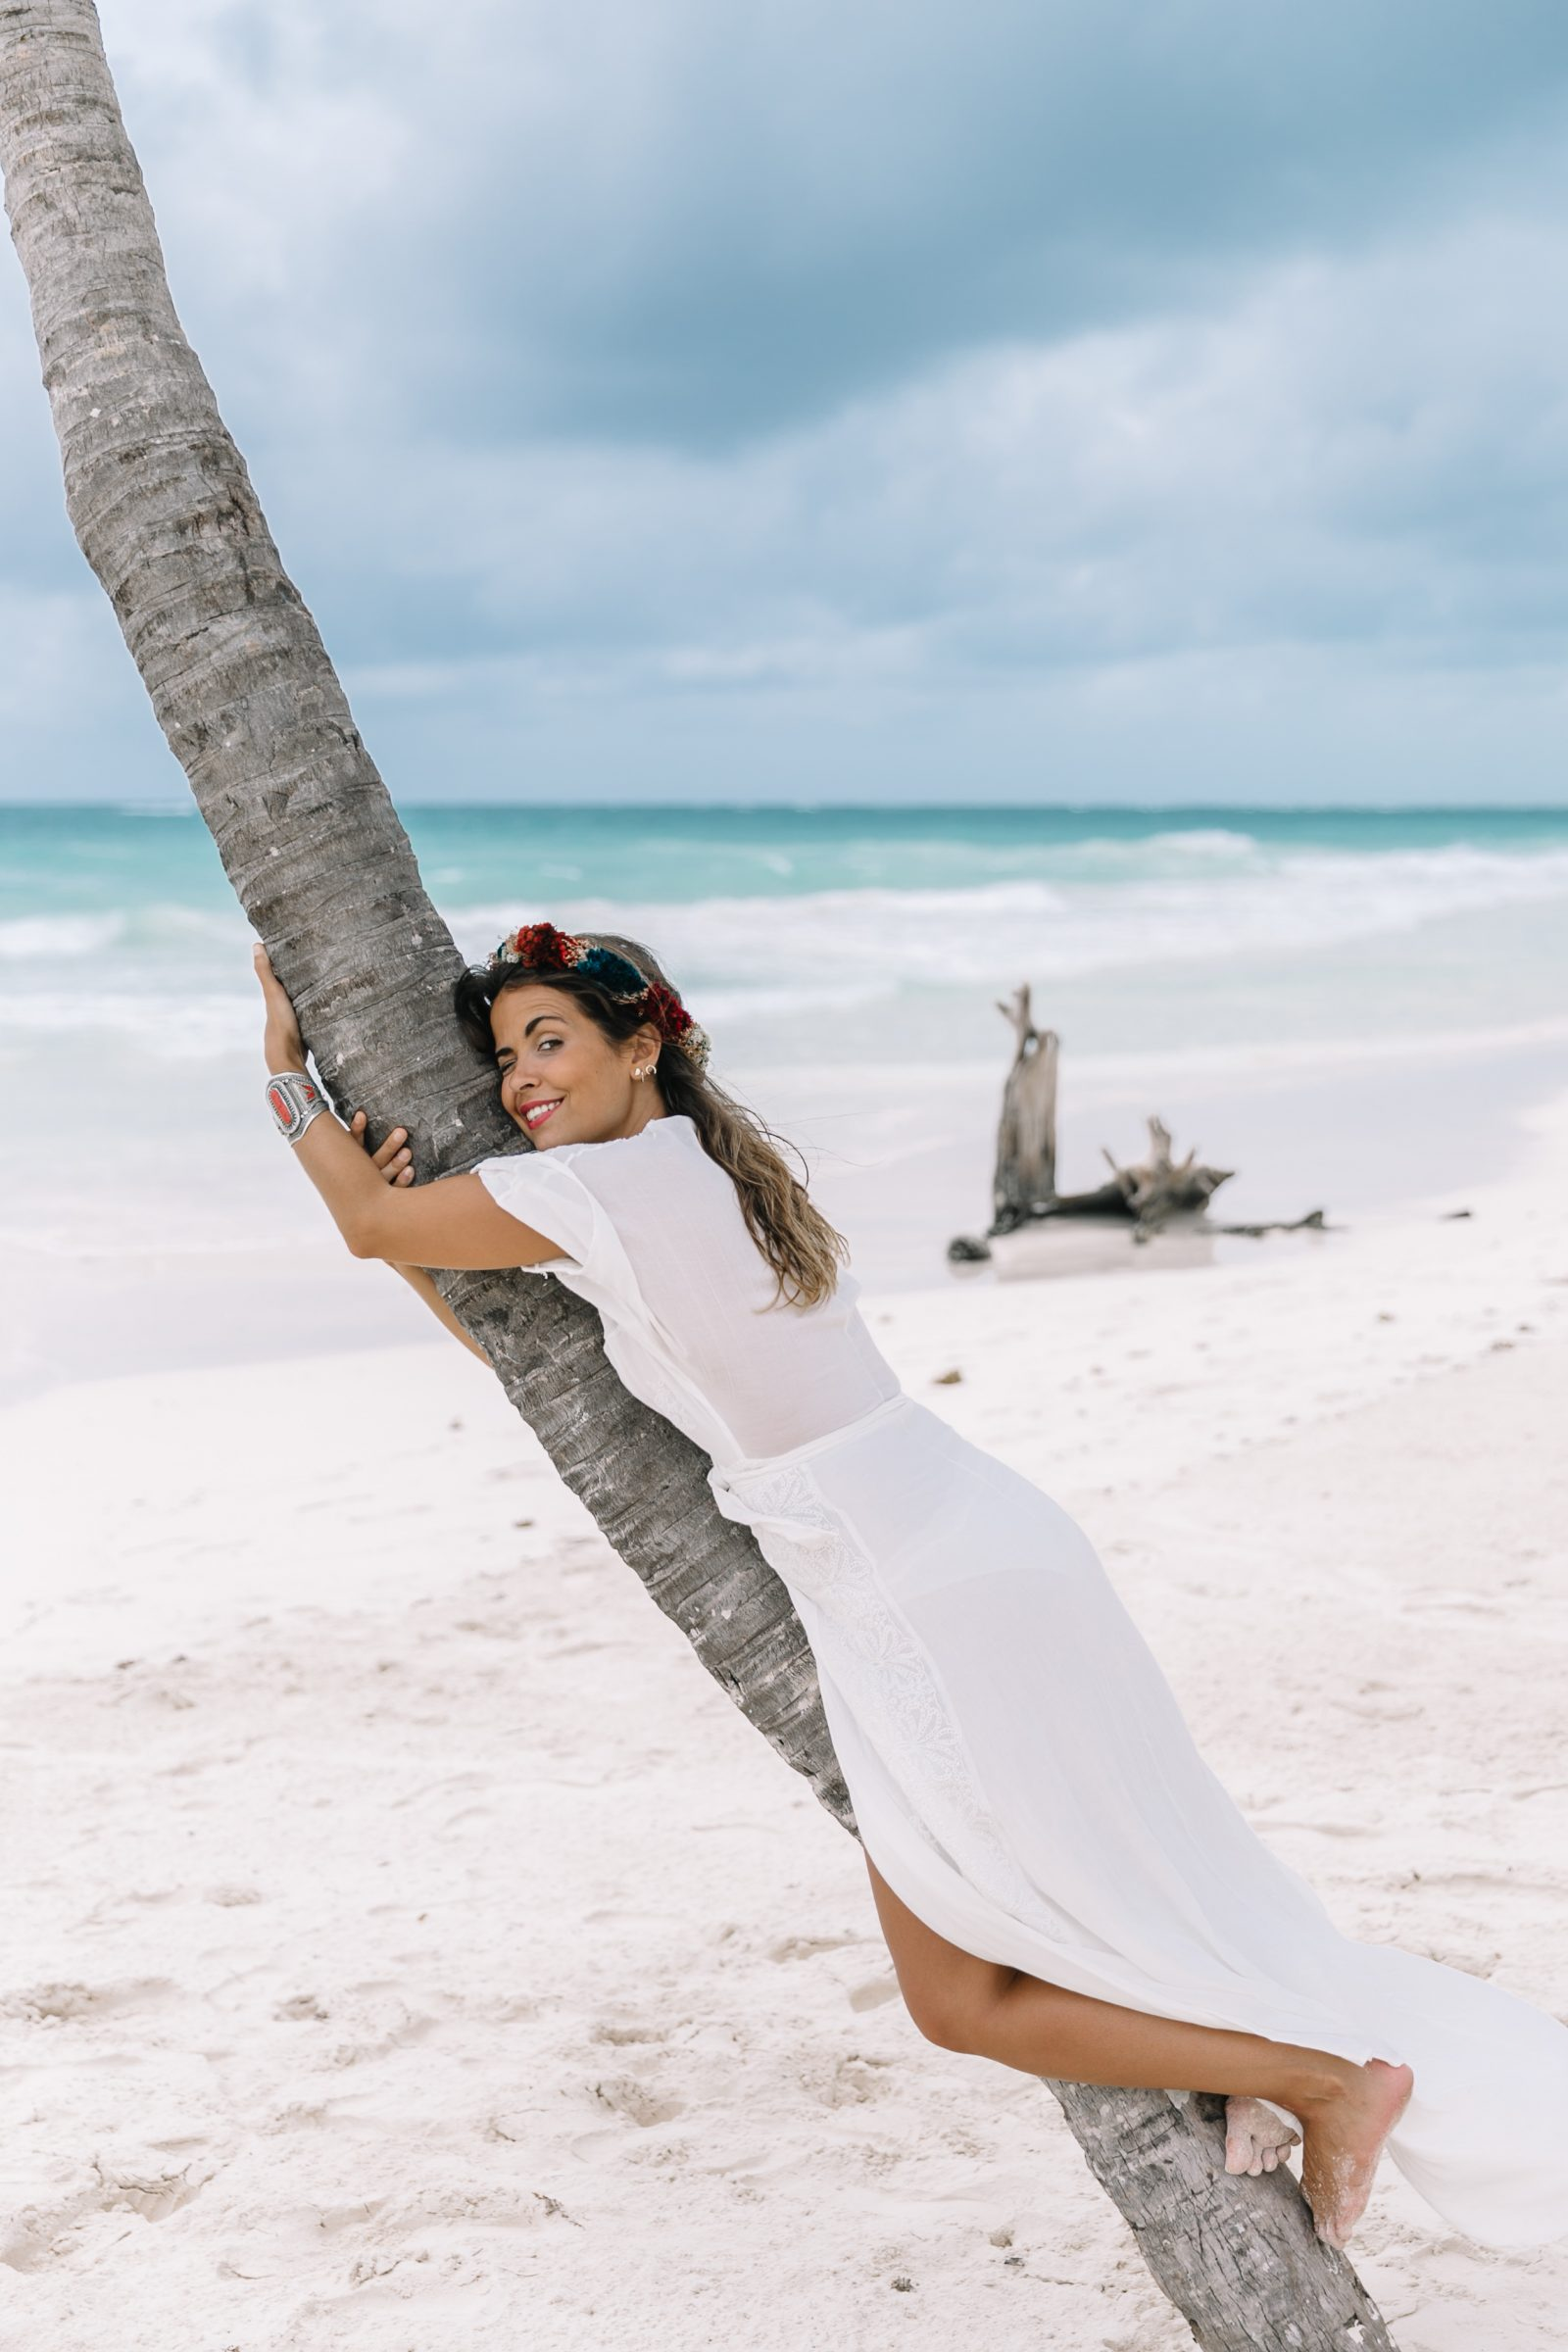 white_long_dress-boho_style-tulum_mexico-beach-floral_crown-outfit-collage_vintage-5